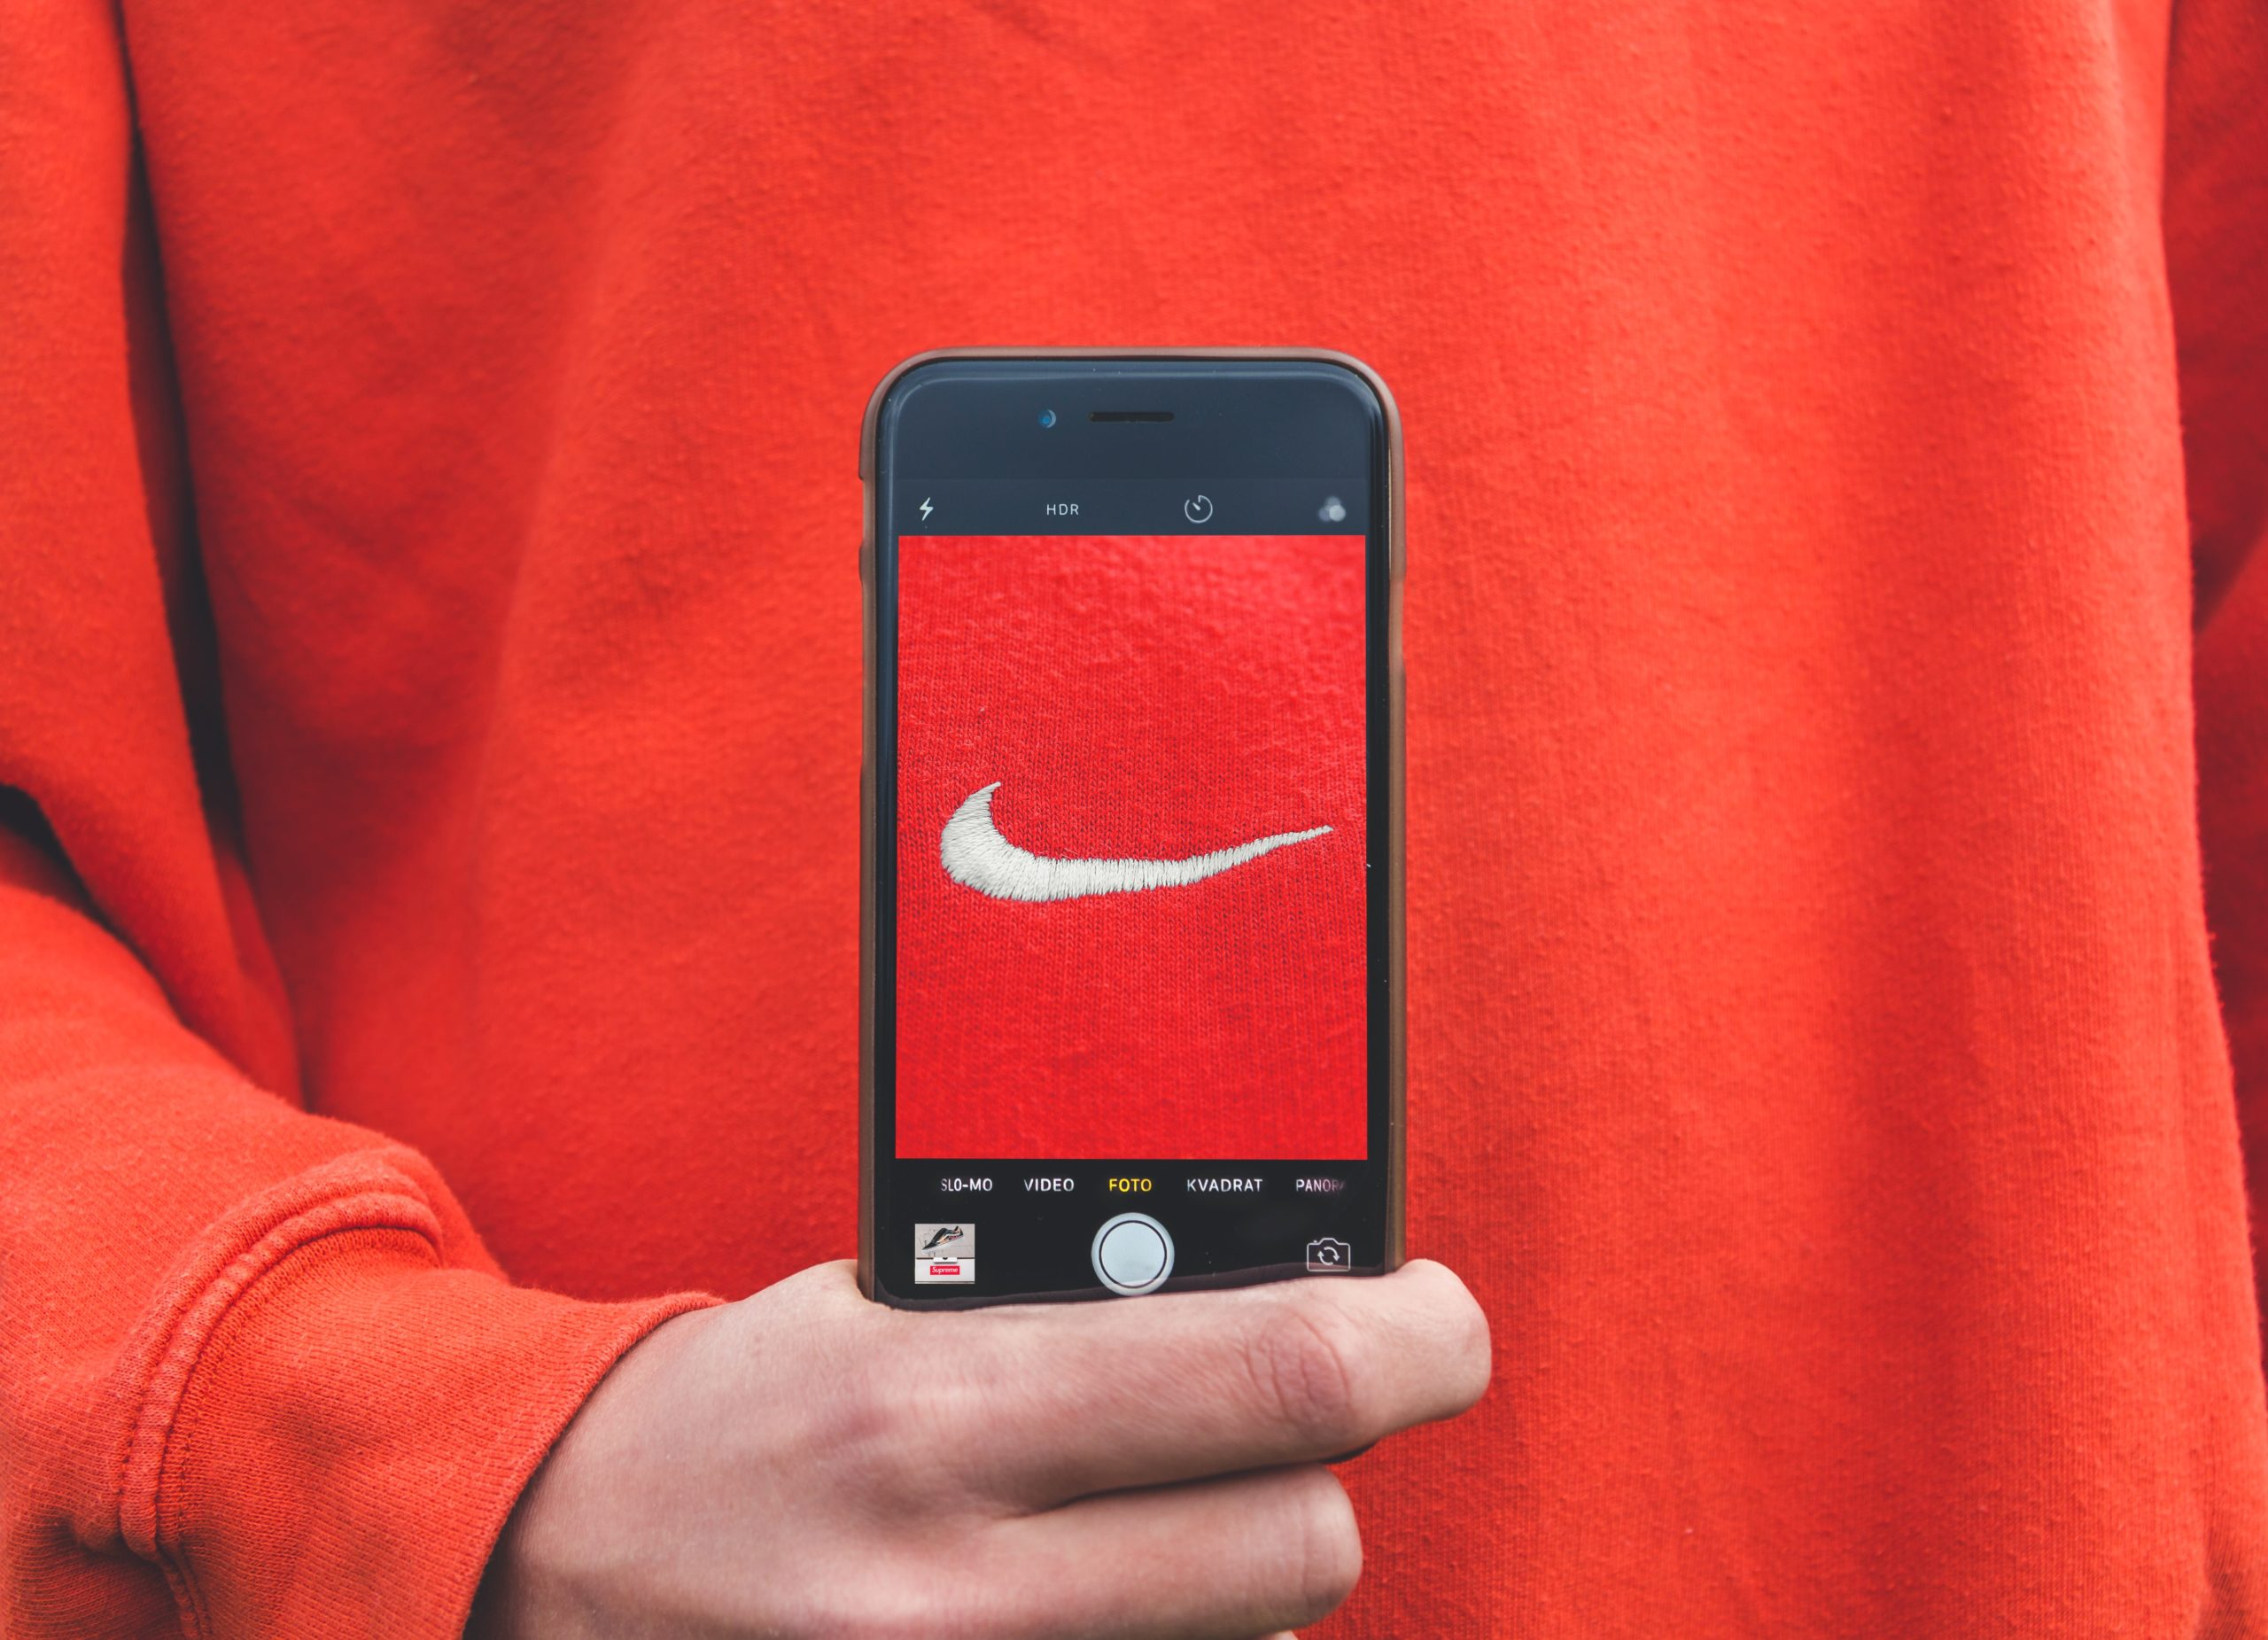 nike symbol on a sweatshirt with a phone taking a photo of the symbol